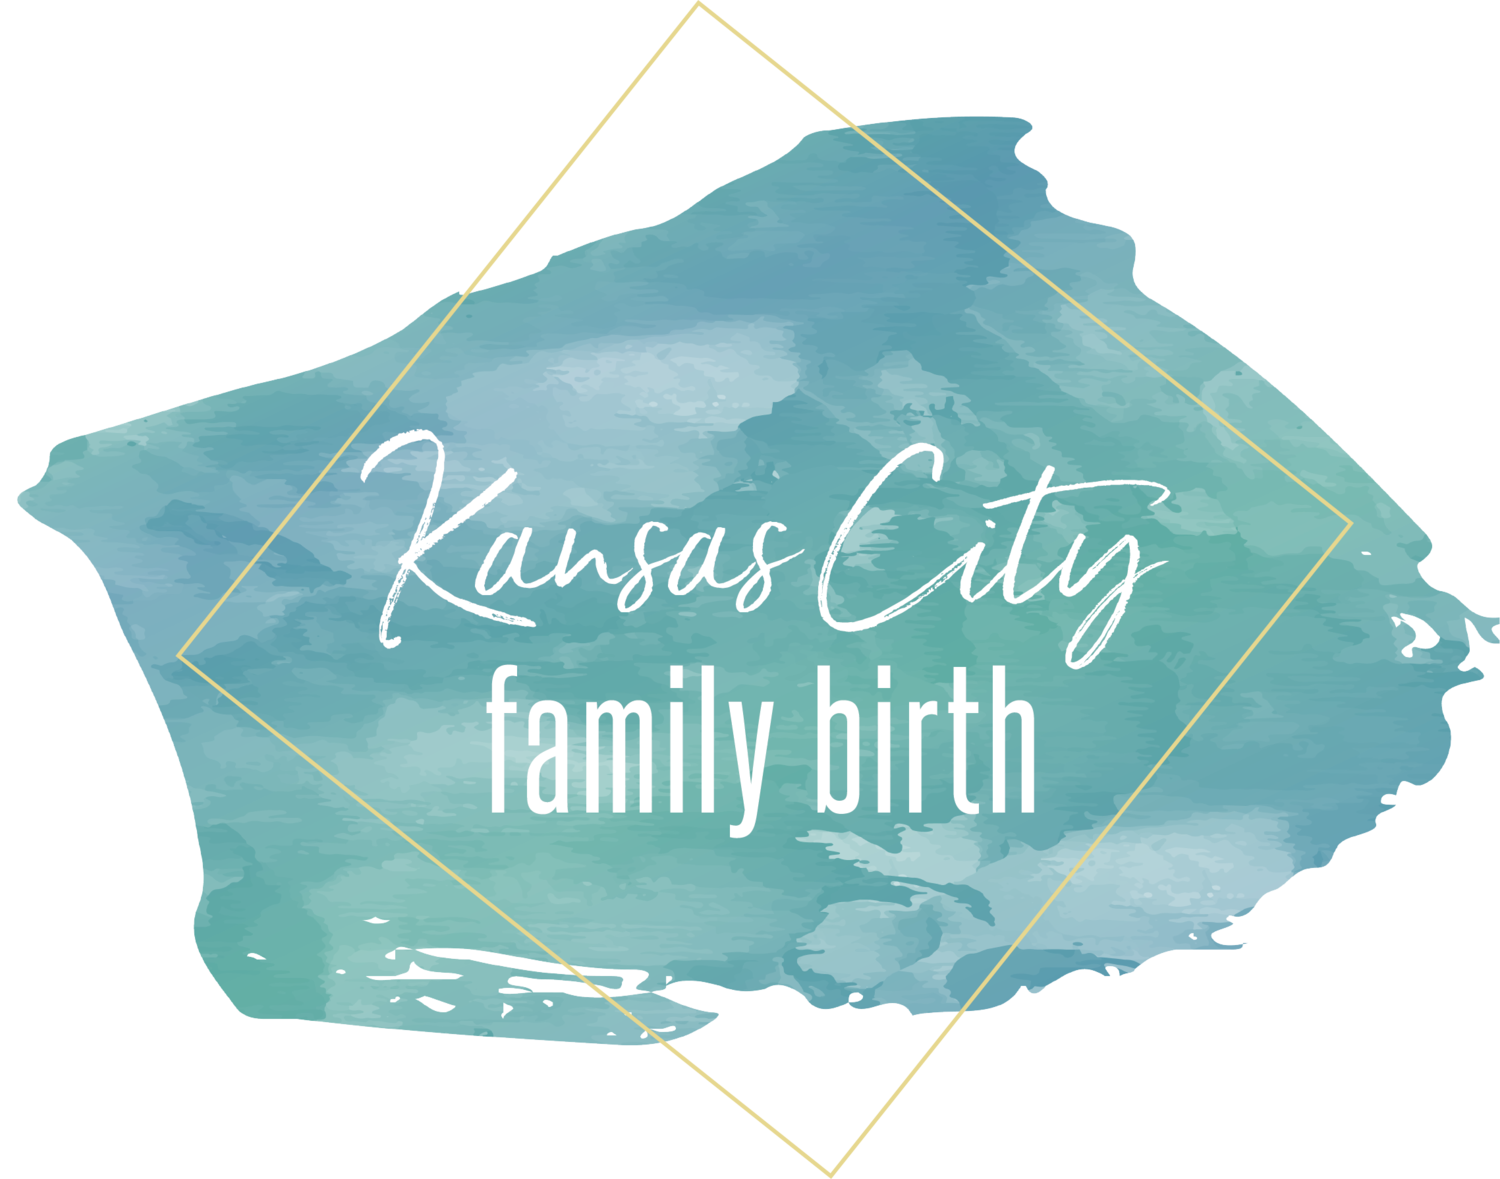 Kansas City Family Birth